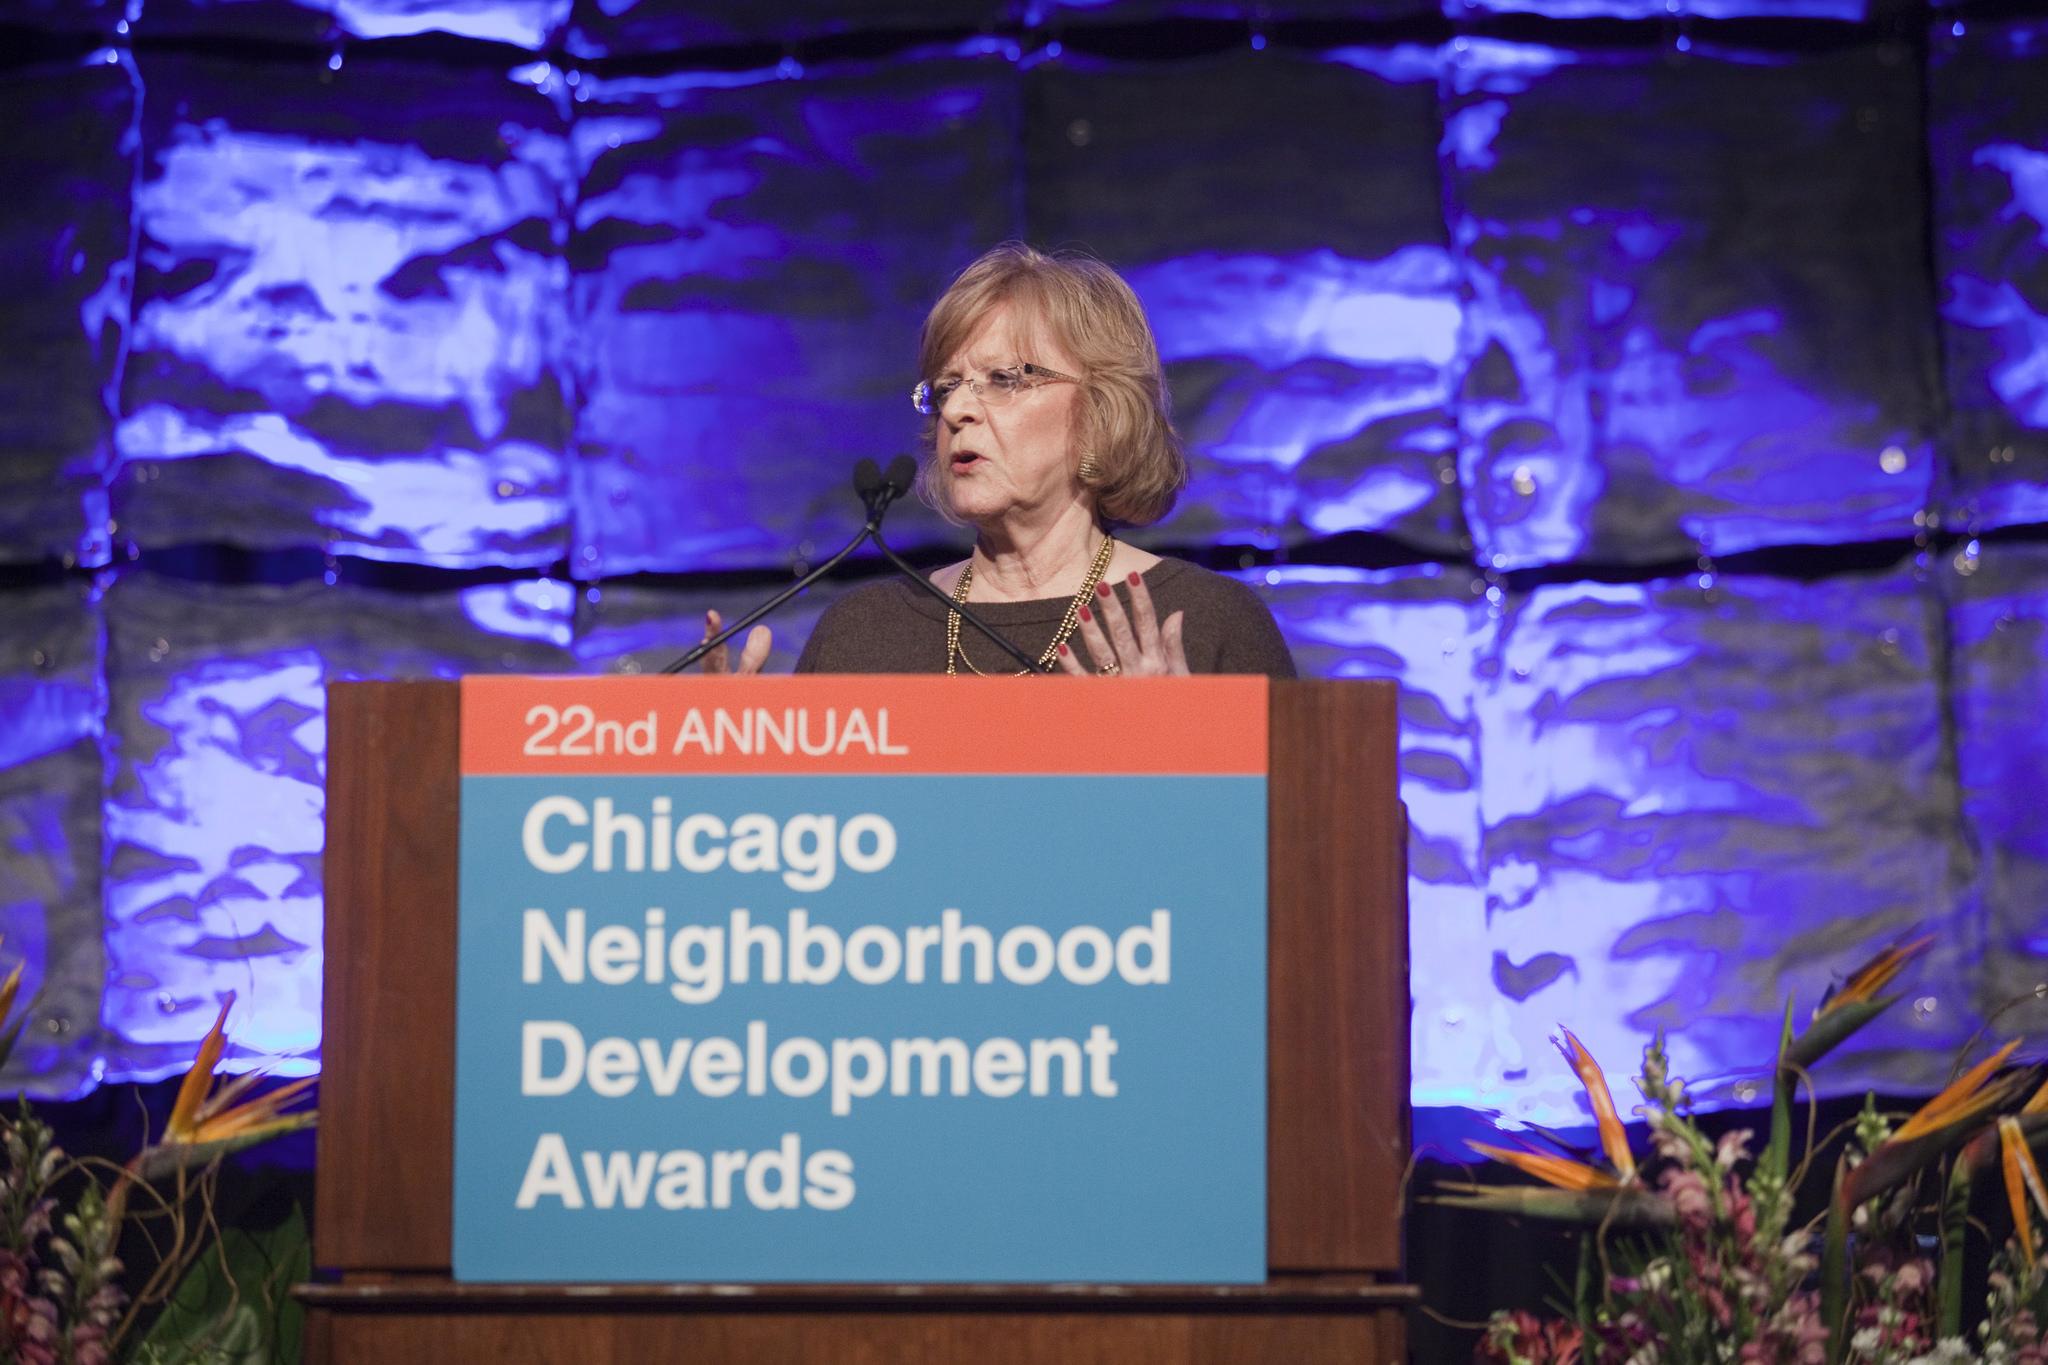 Julia-Stasch-President-of-The-John-D.-and-Catherine-T.-MacArthur-Foundation-and-provided-Keynote-for-CNDA22.jpg